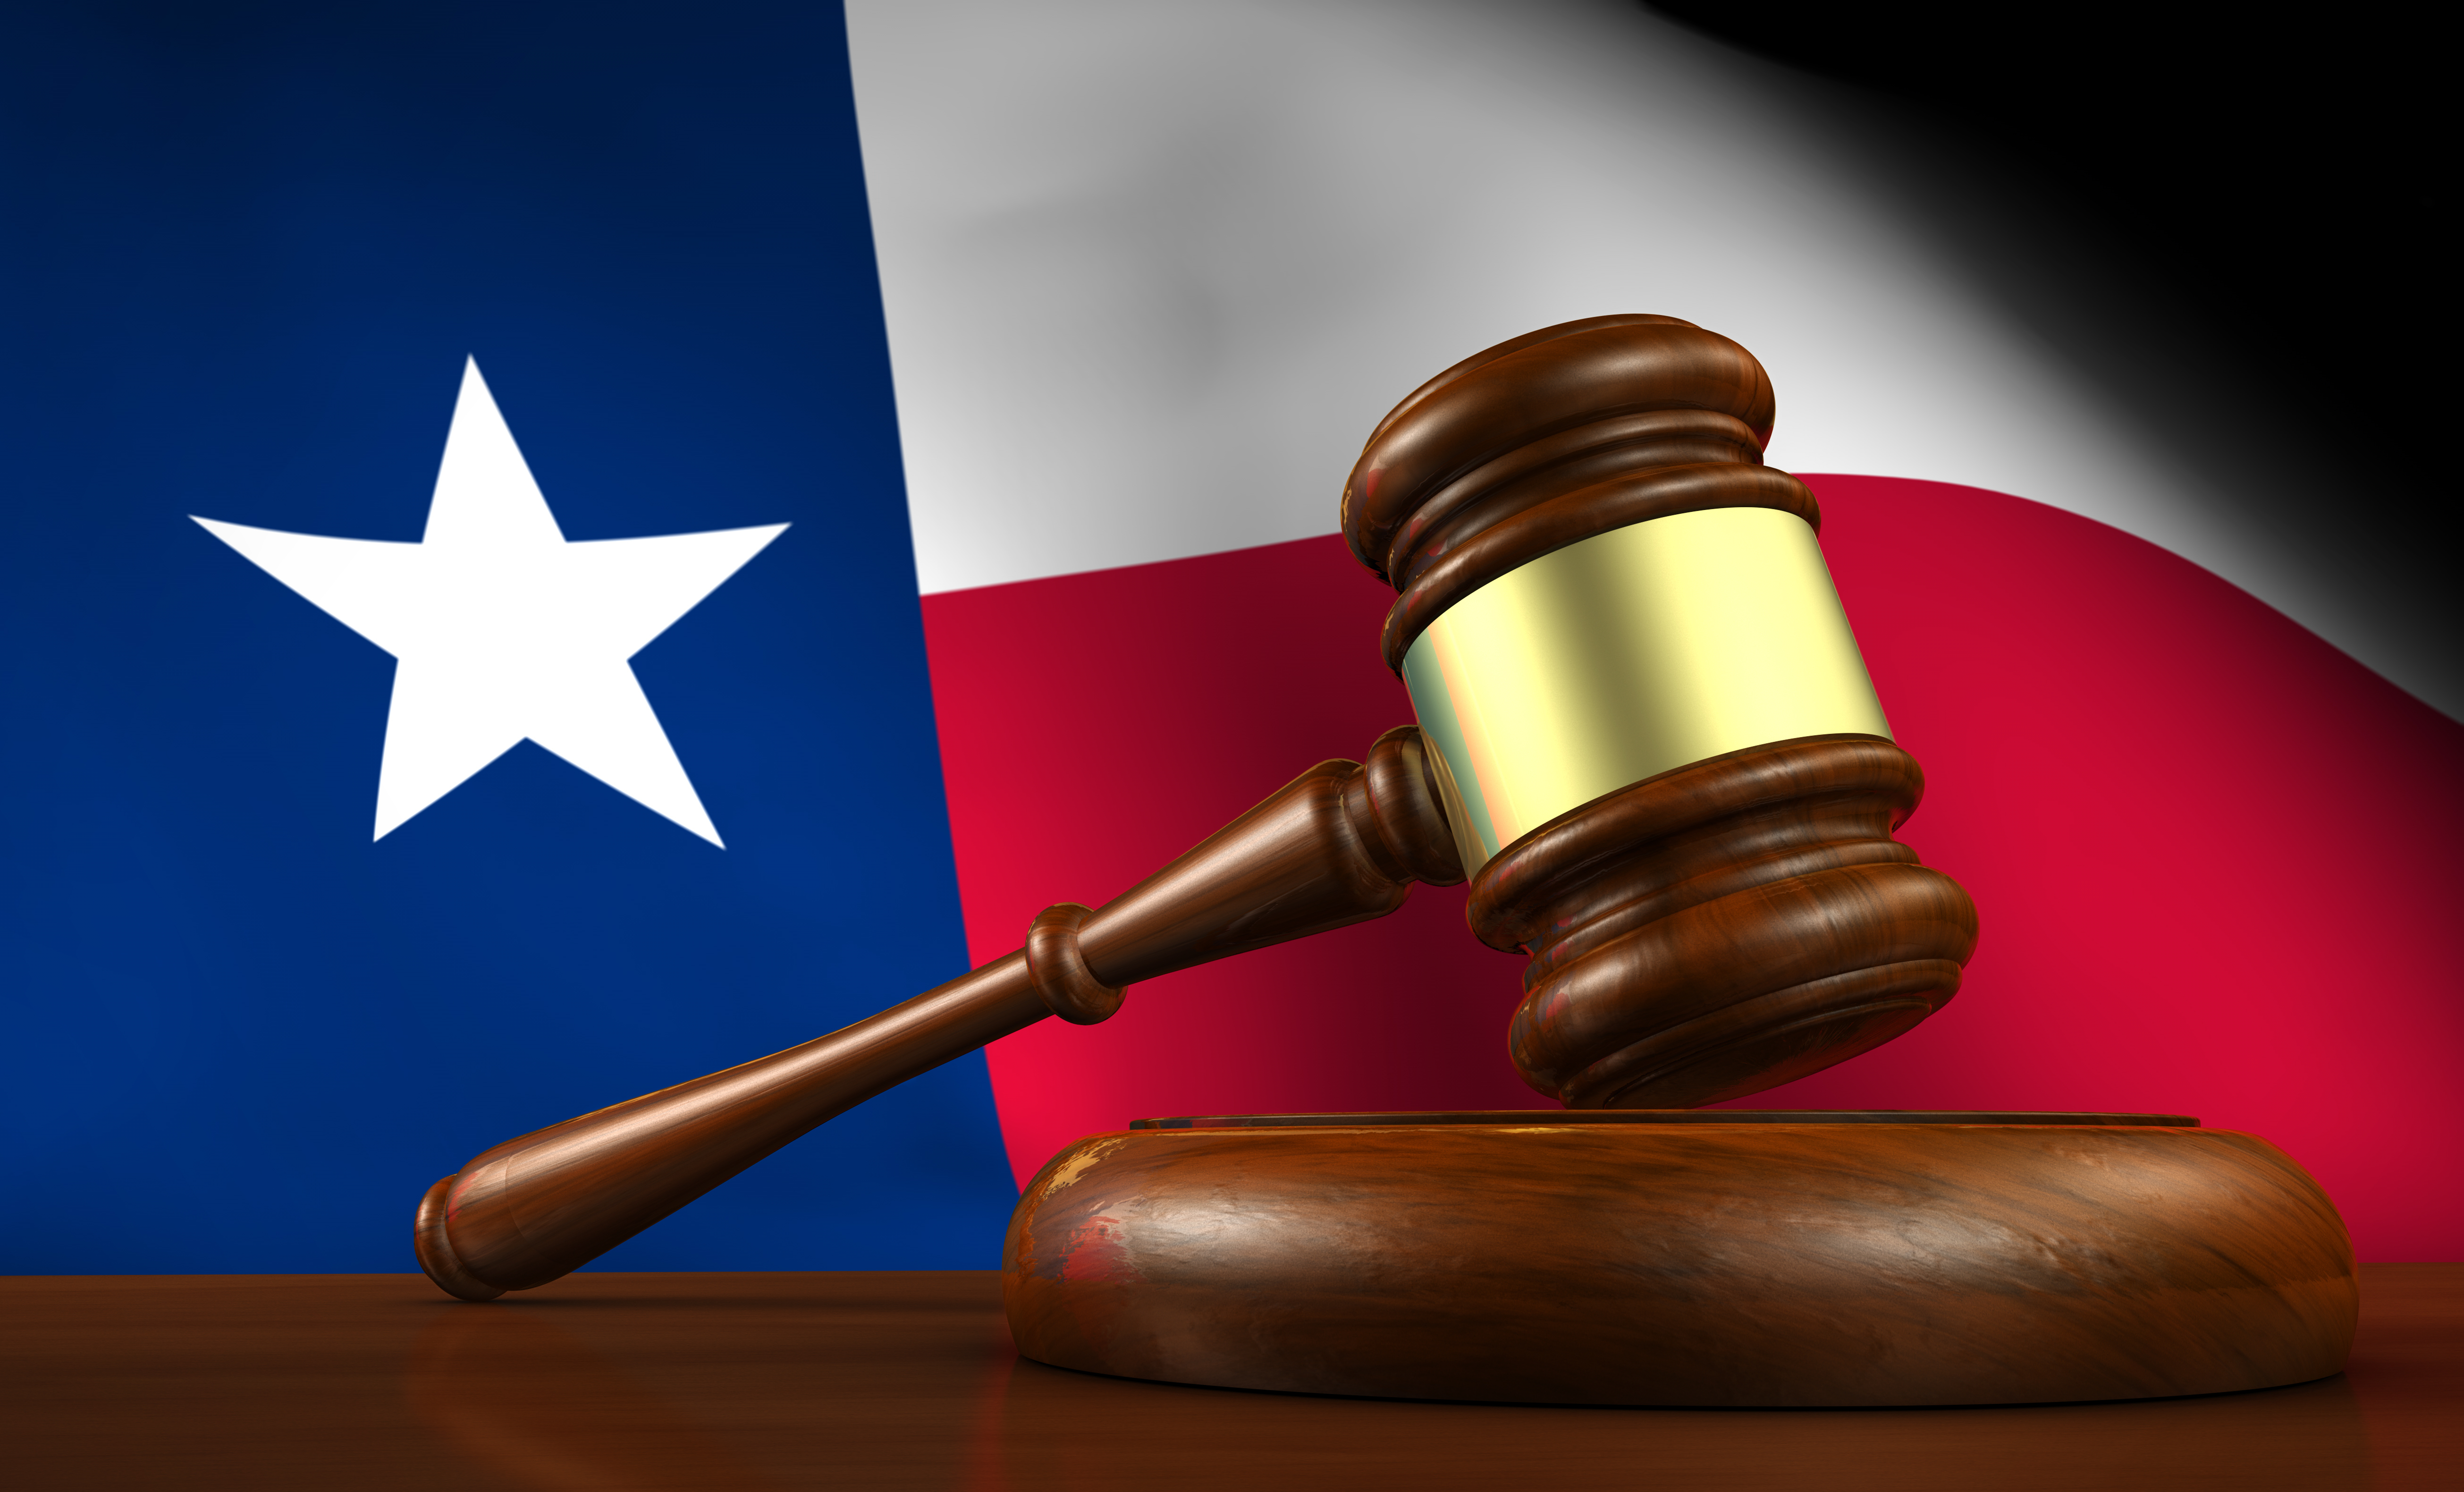 How to Find Out If You Have Warrants in Texas